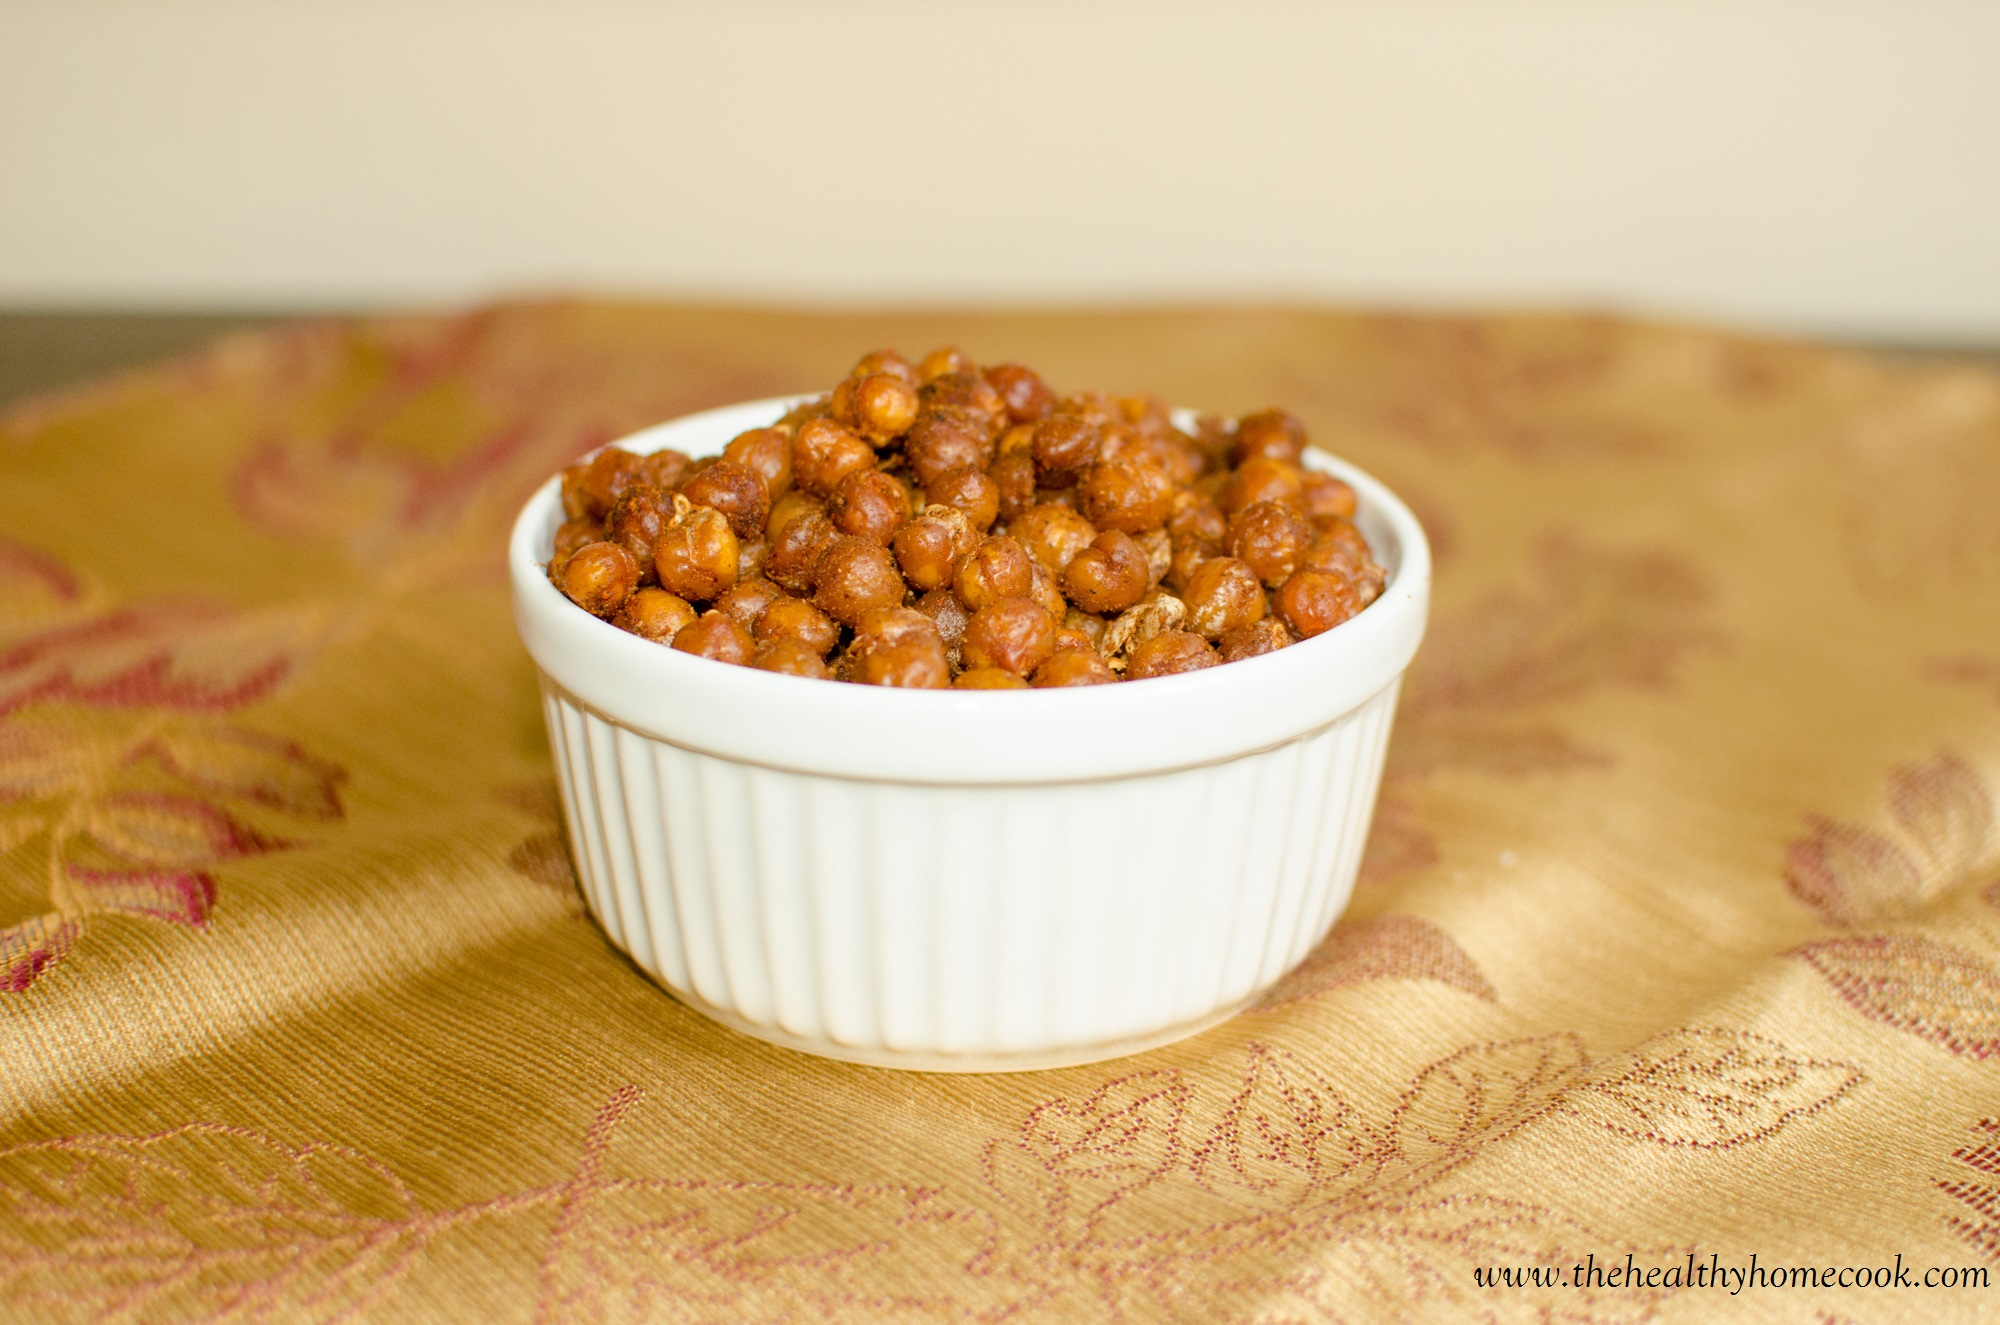 Roasted chickpeas, are a delicious savory snack that's low fat, high fiber, packed with protein, andperfect forkids and adults.